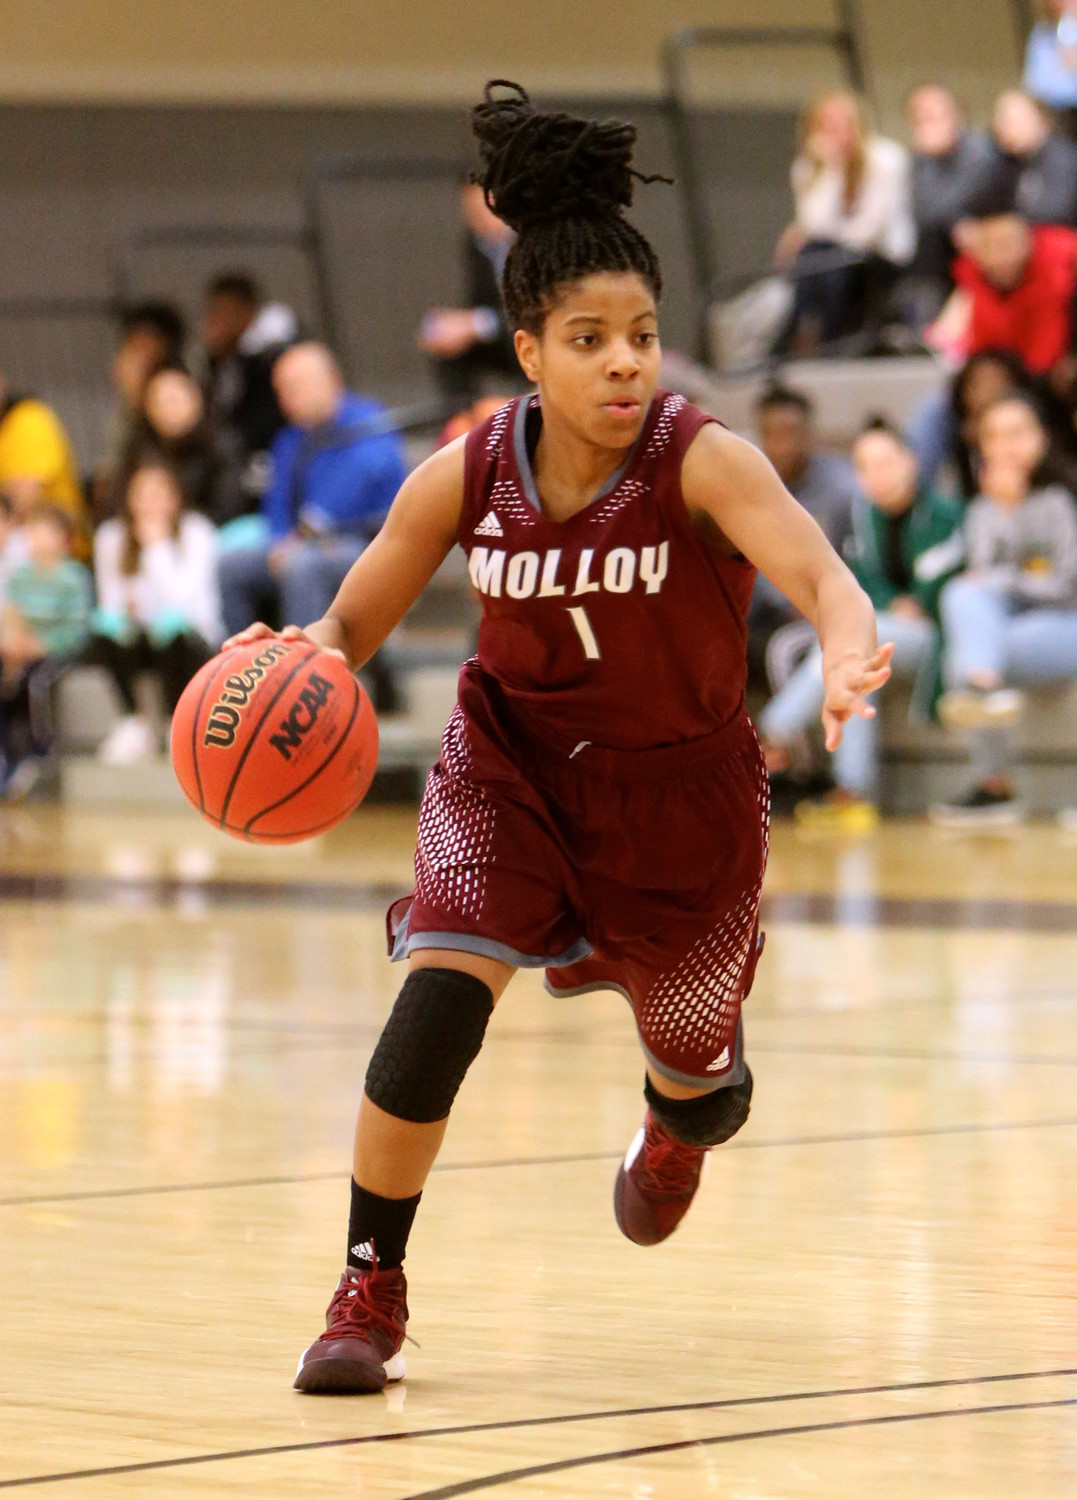 Ihnacinse Grady started 31 games for Molloy last season and led the Lady Lions in minutes per game at 34.9. She averaged 8.8 points and 2.9 assists.